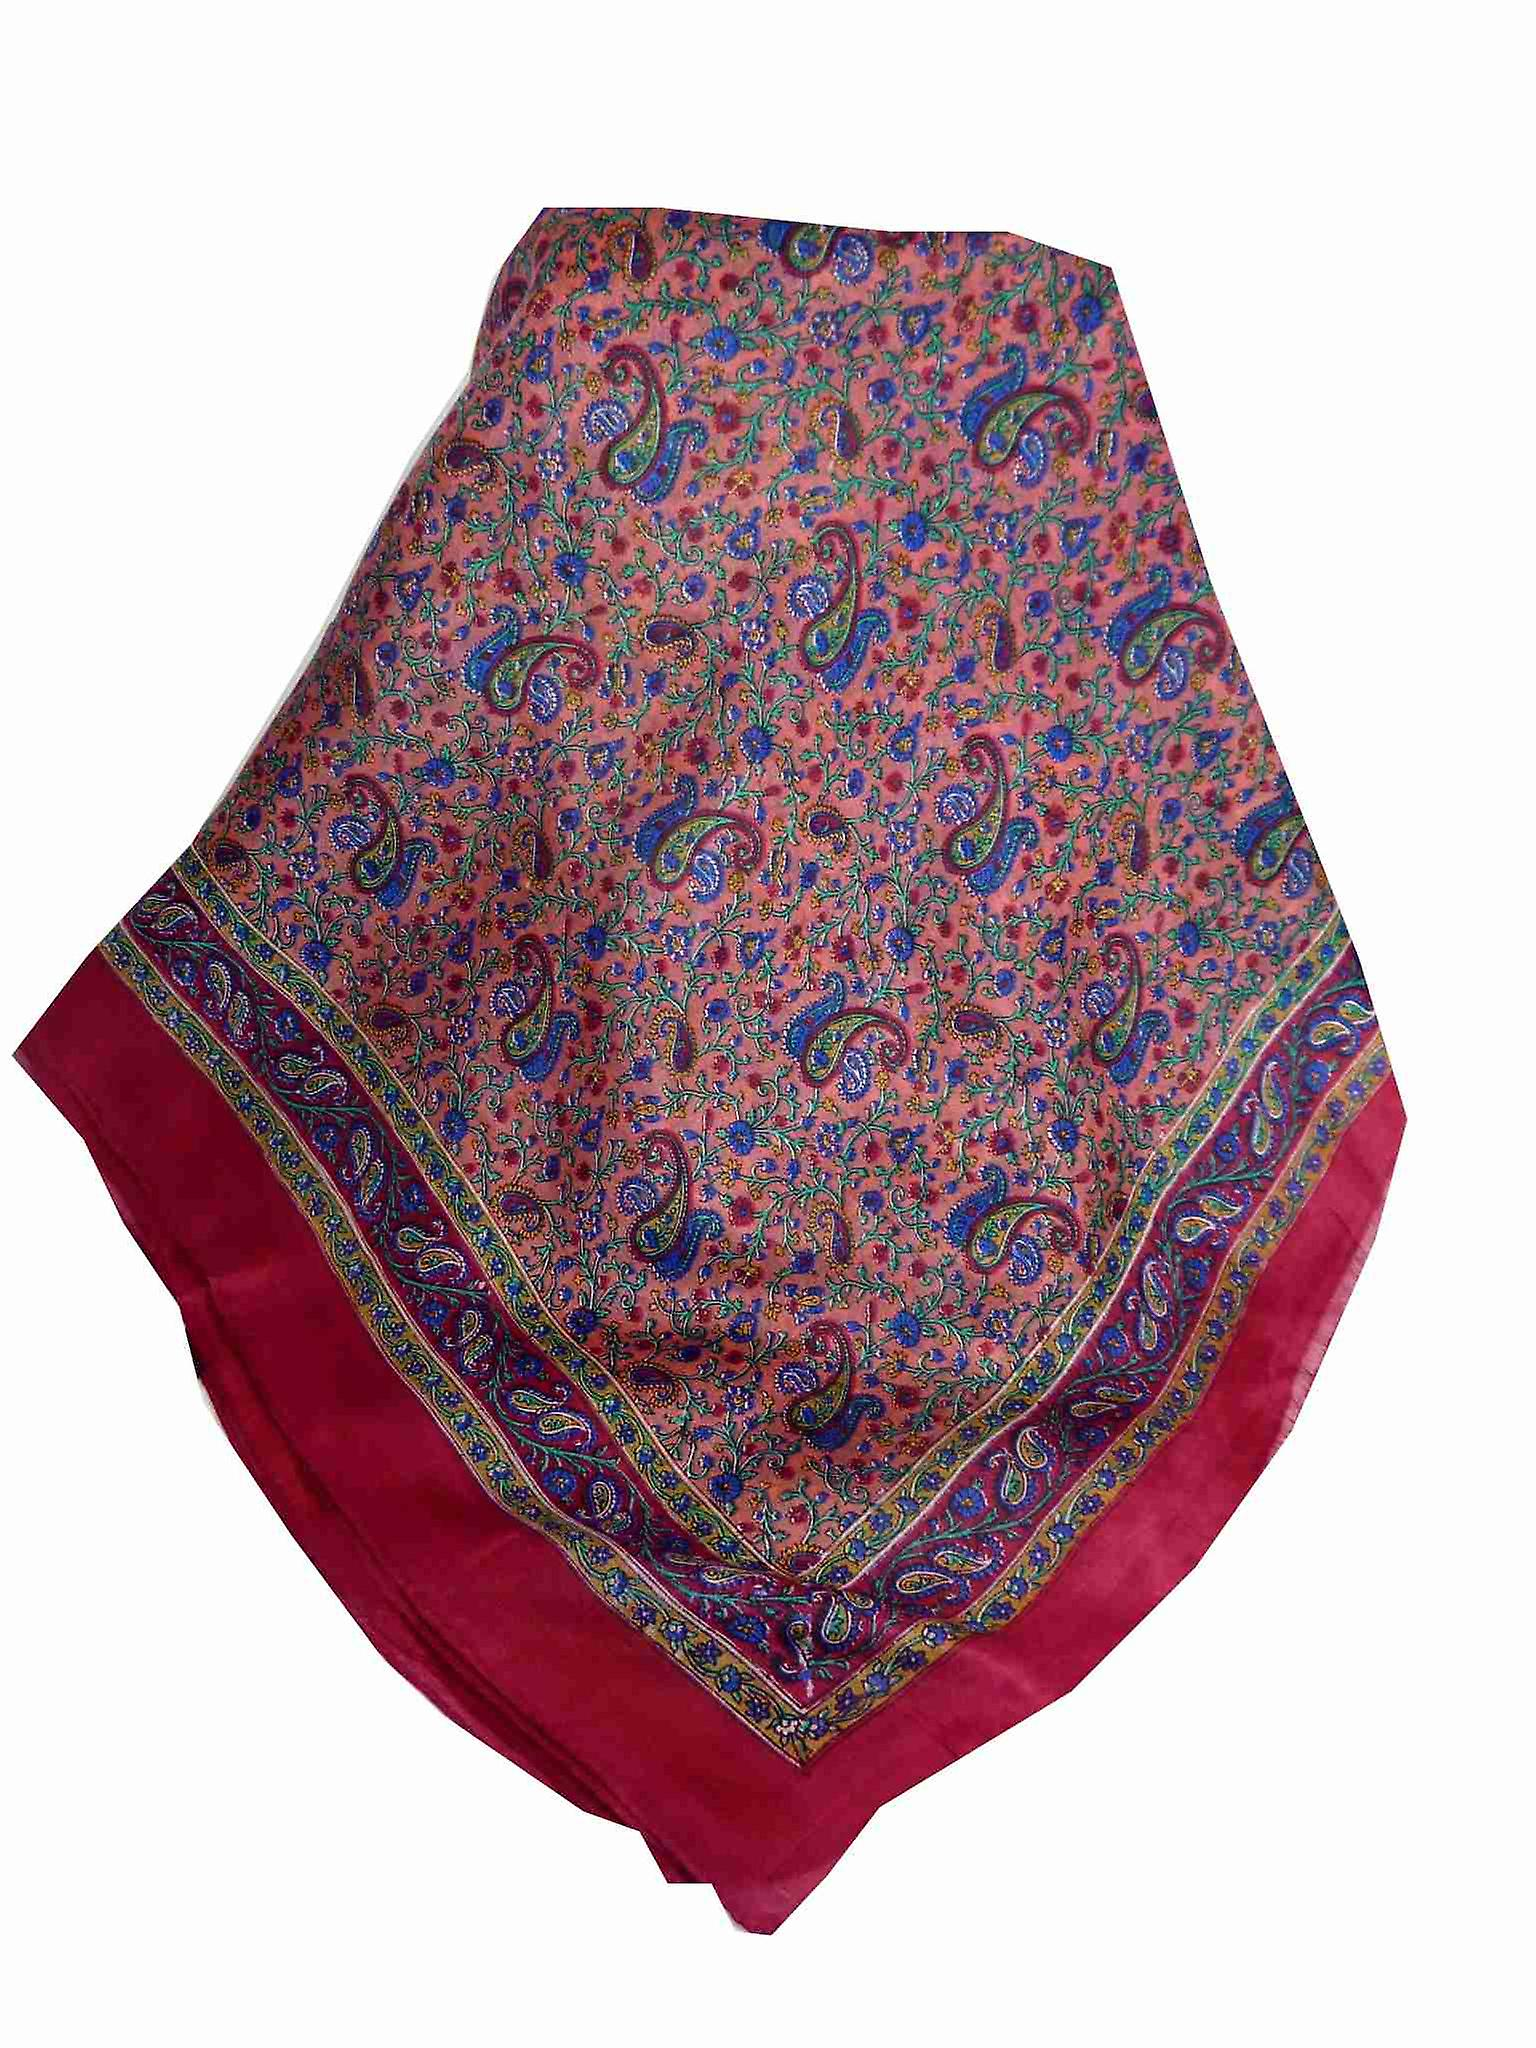 Mulberry Silk Traditional Square Scarf Zena Cerise by Pashmina & Silk